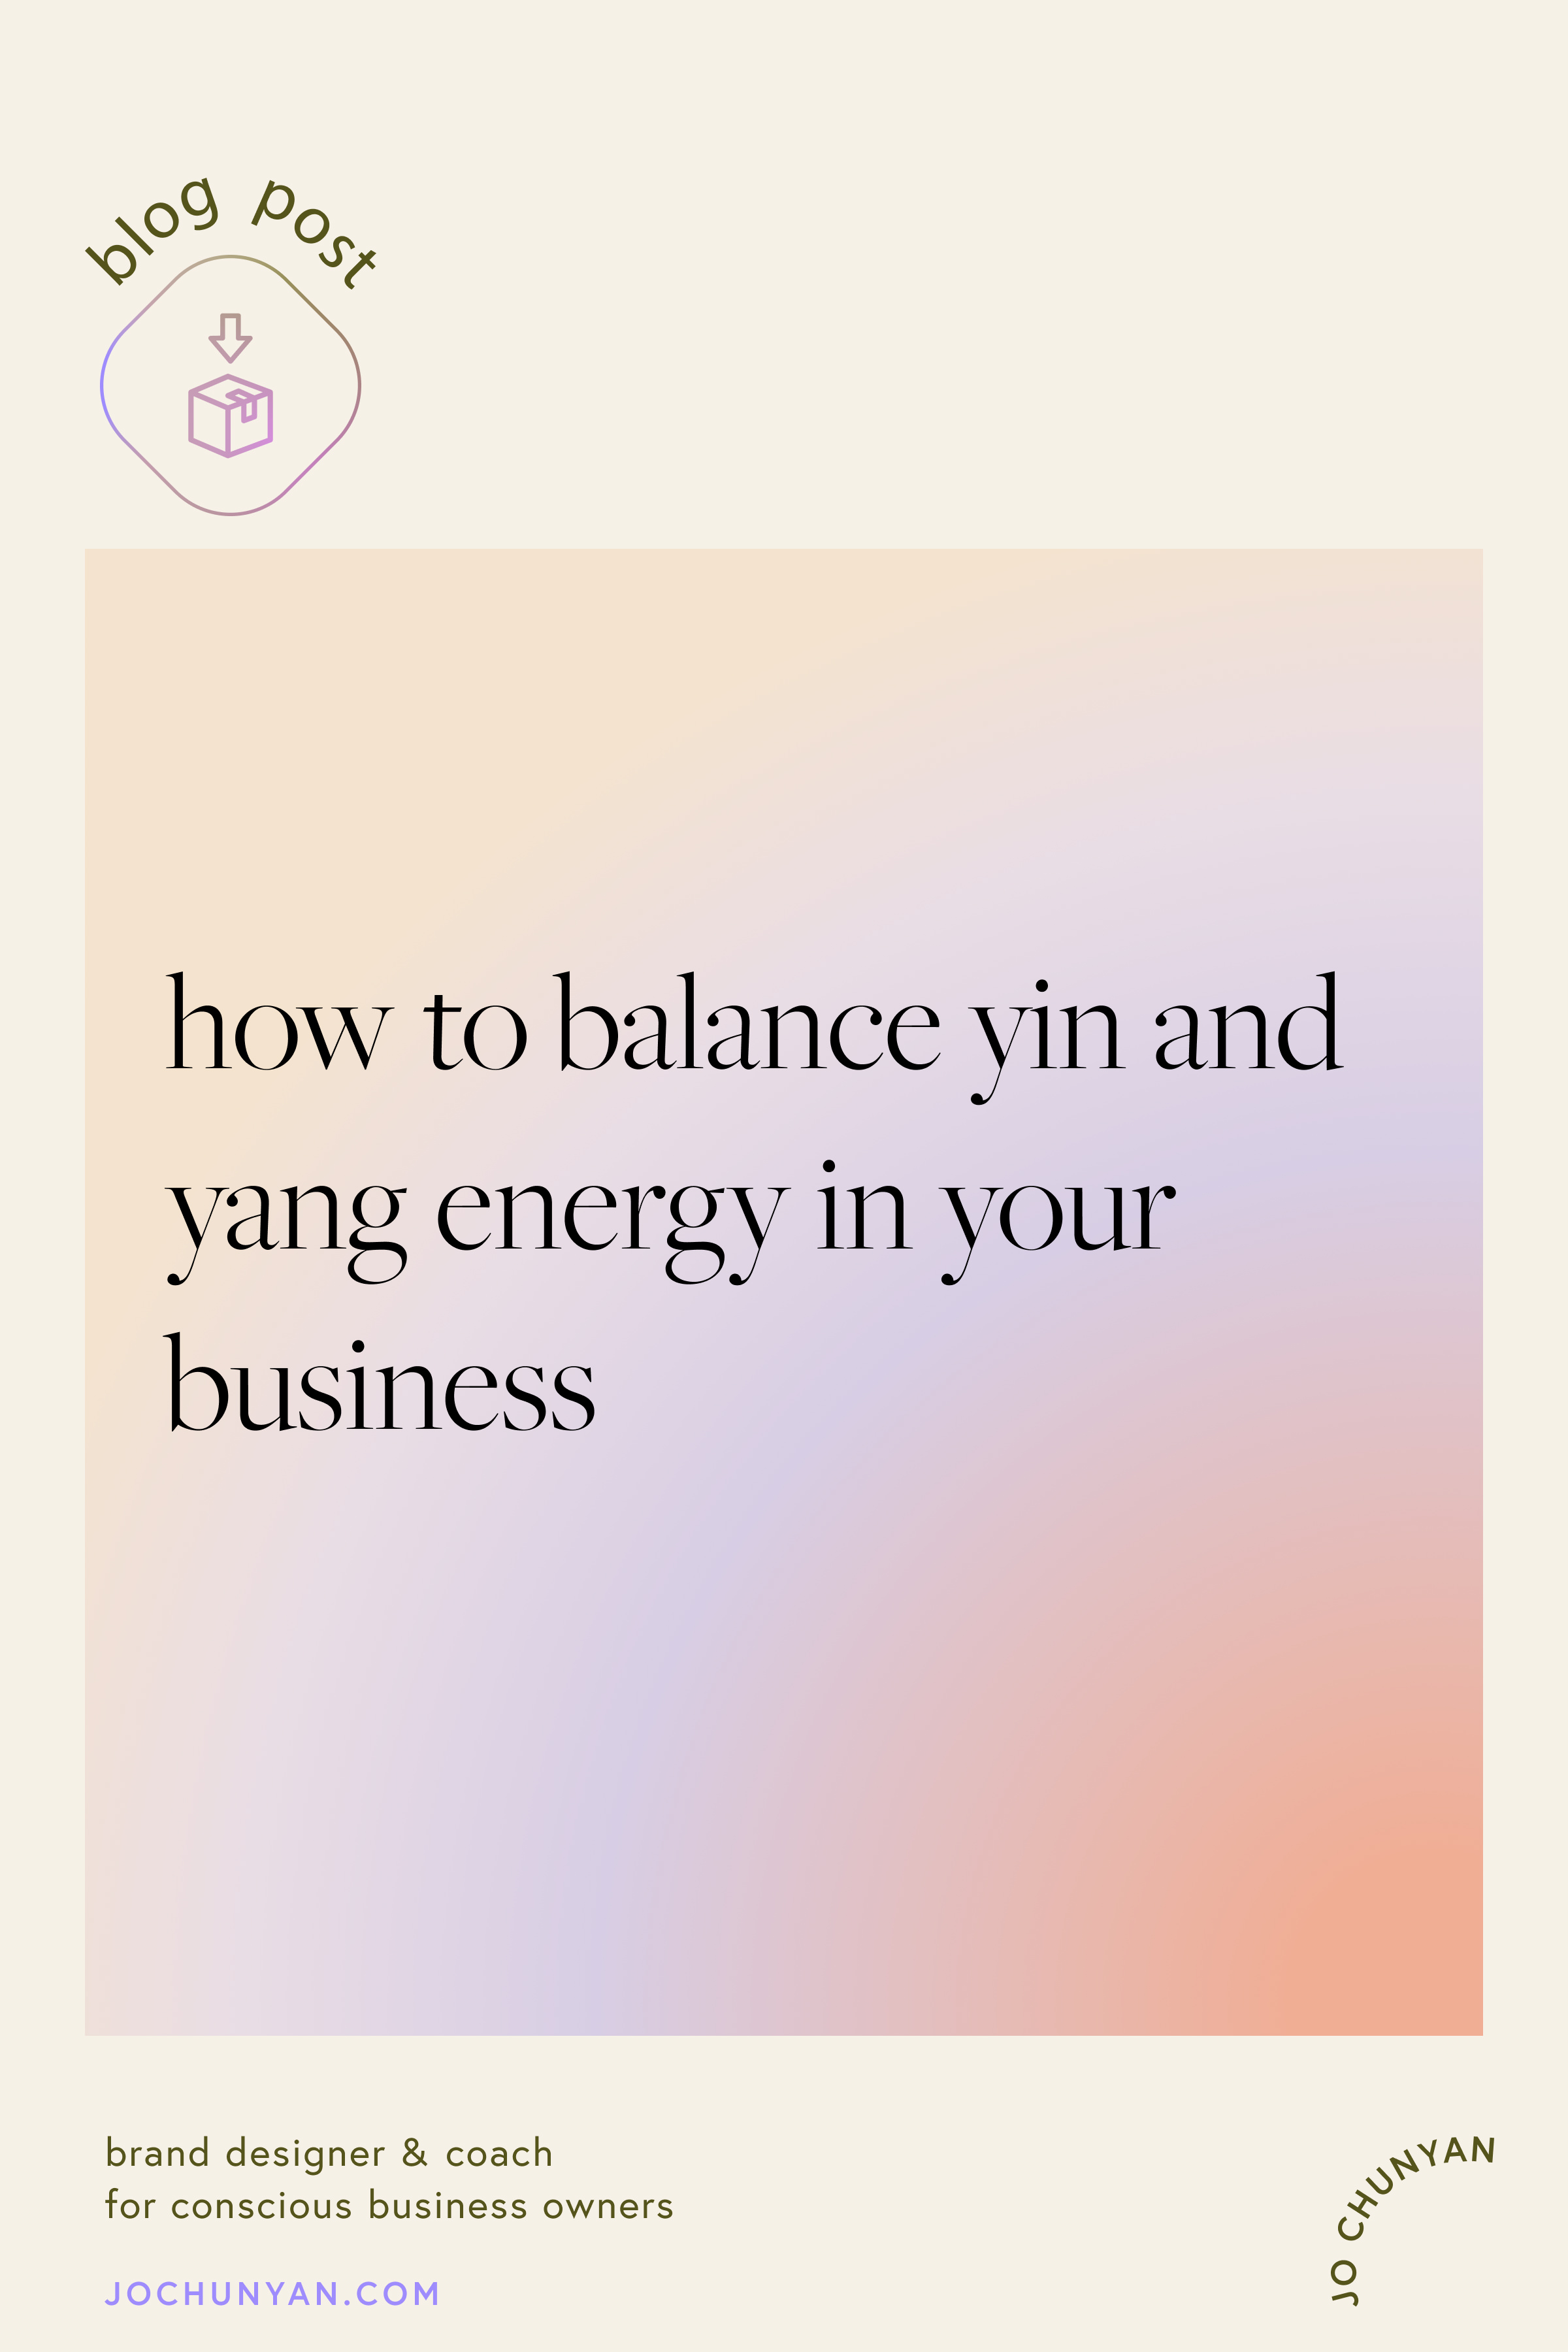 How to balance yin and yang energy in your business